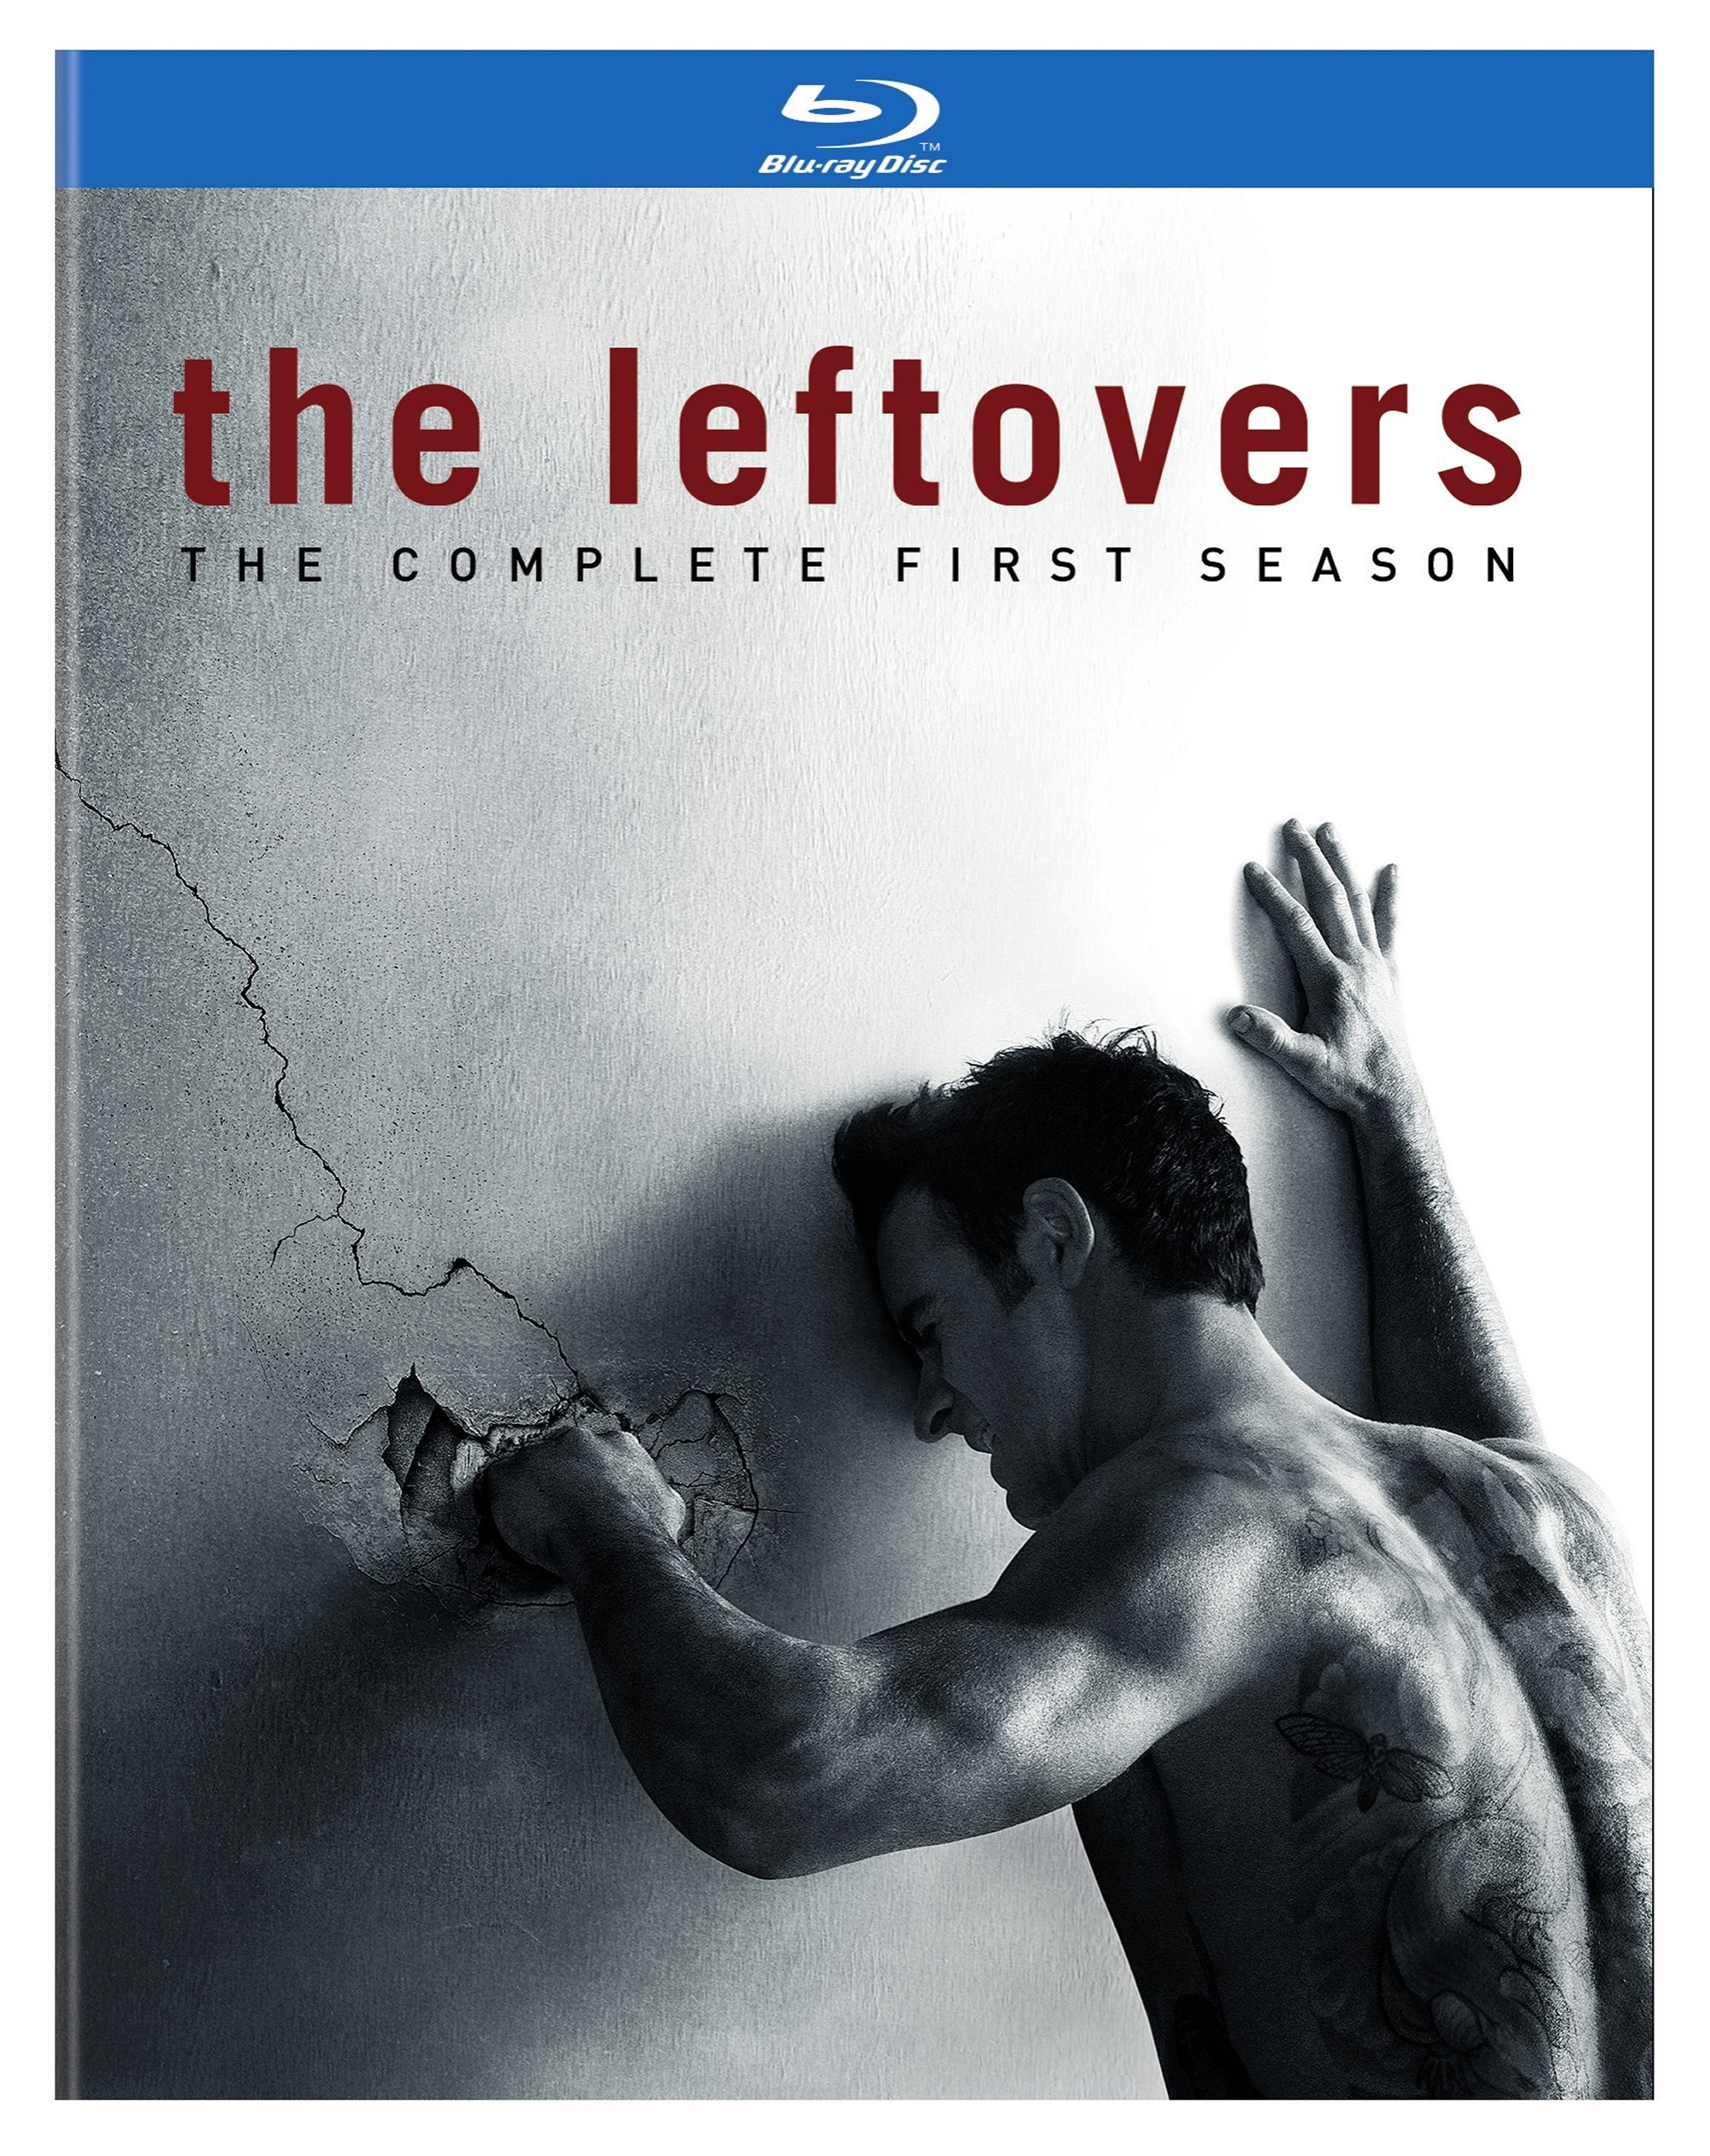 Blu-ray : The Leftovers: The Complete First Season (Ultraviolet Digital Copy, 2 Pack, Dolby, AC-3, Slipsleeve Packaging)